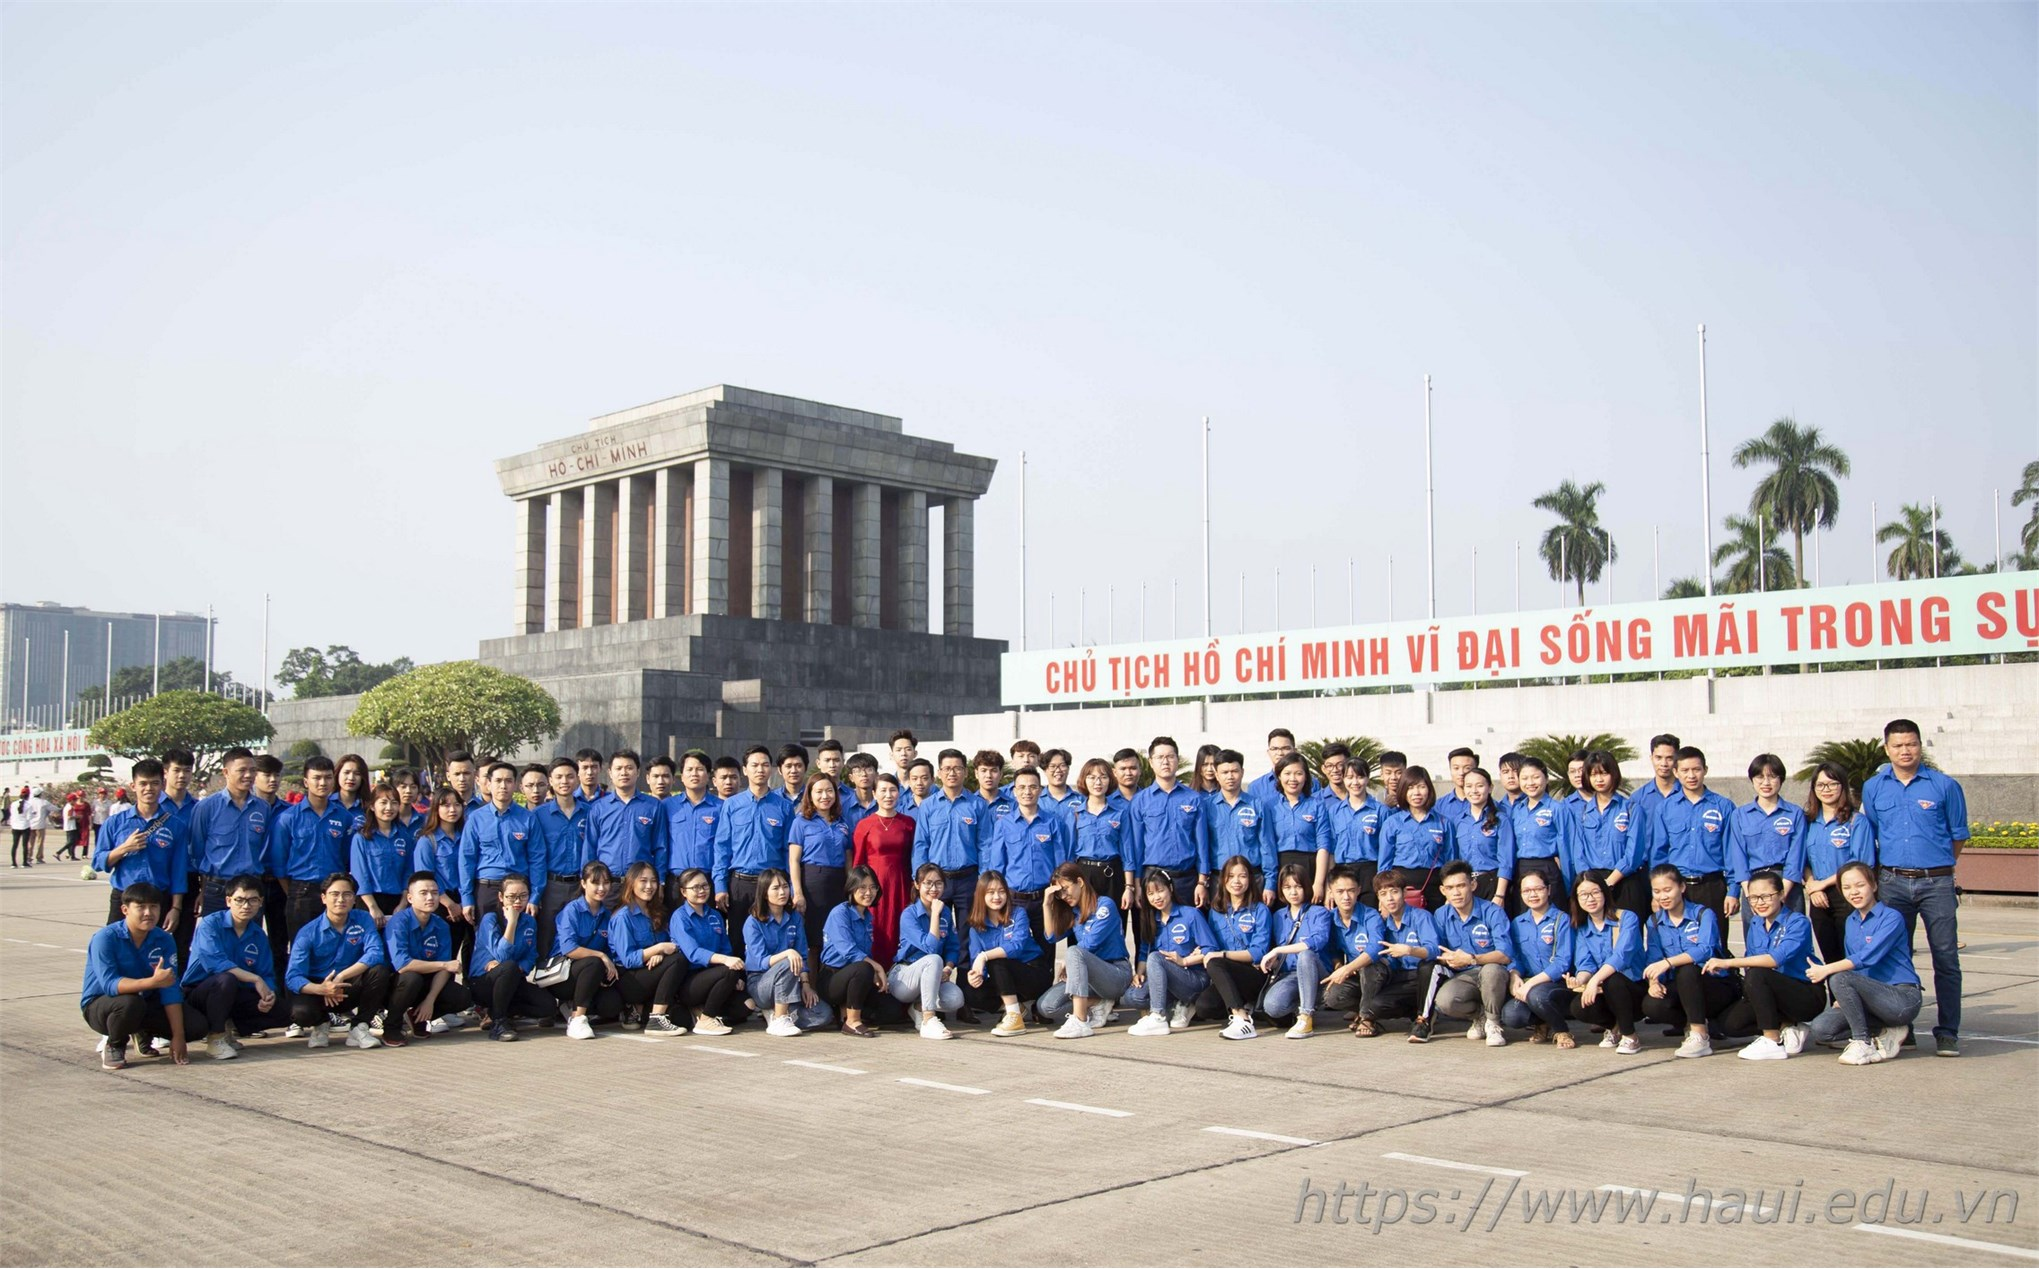 A series of activities to welcome the 9th Congress of Ho Chi Minh Communist Youth Union of Hanoi University of Industry